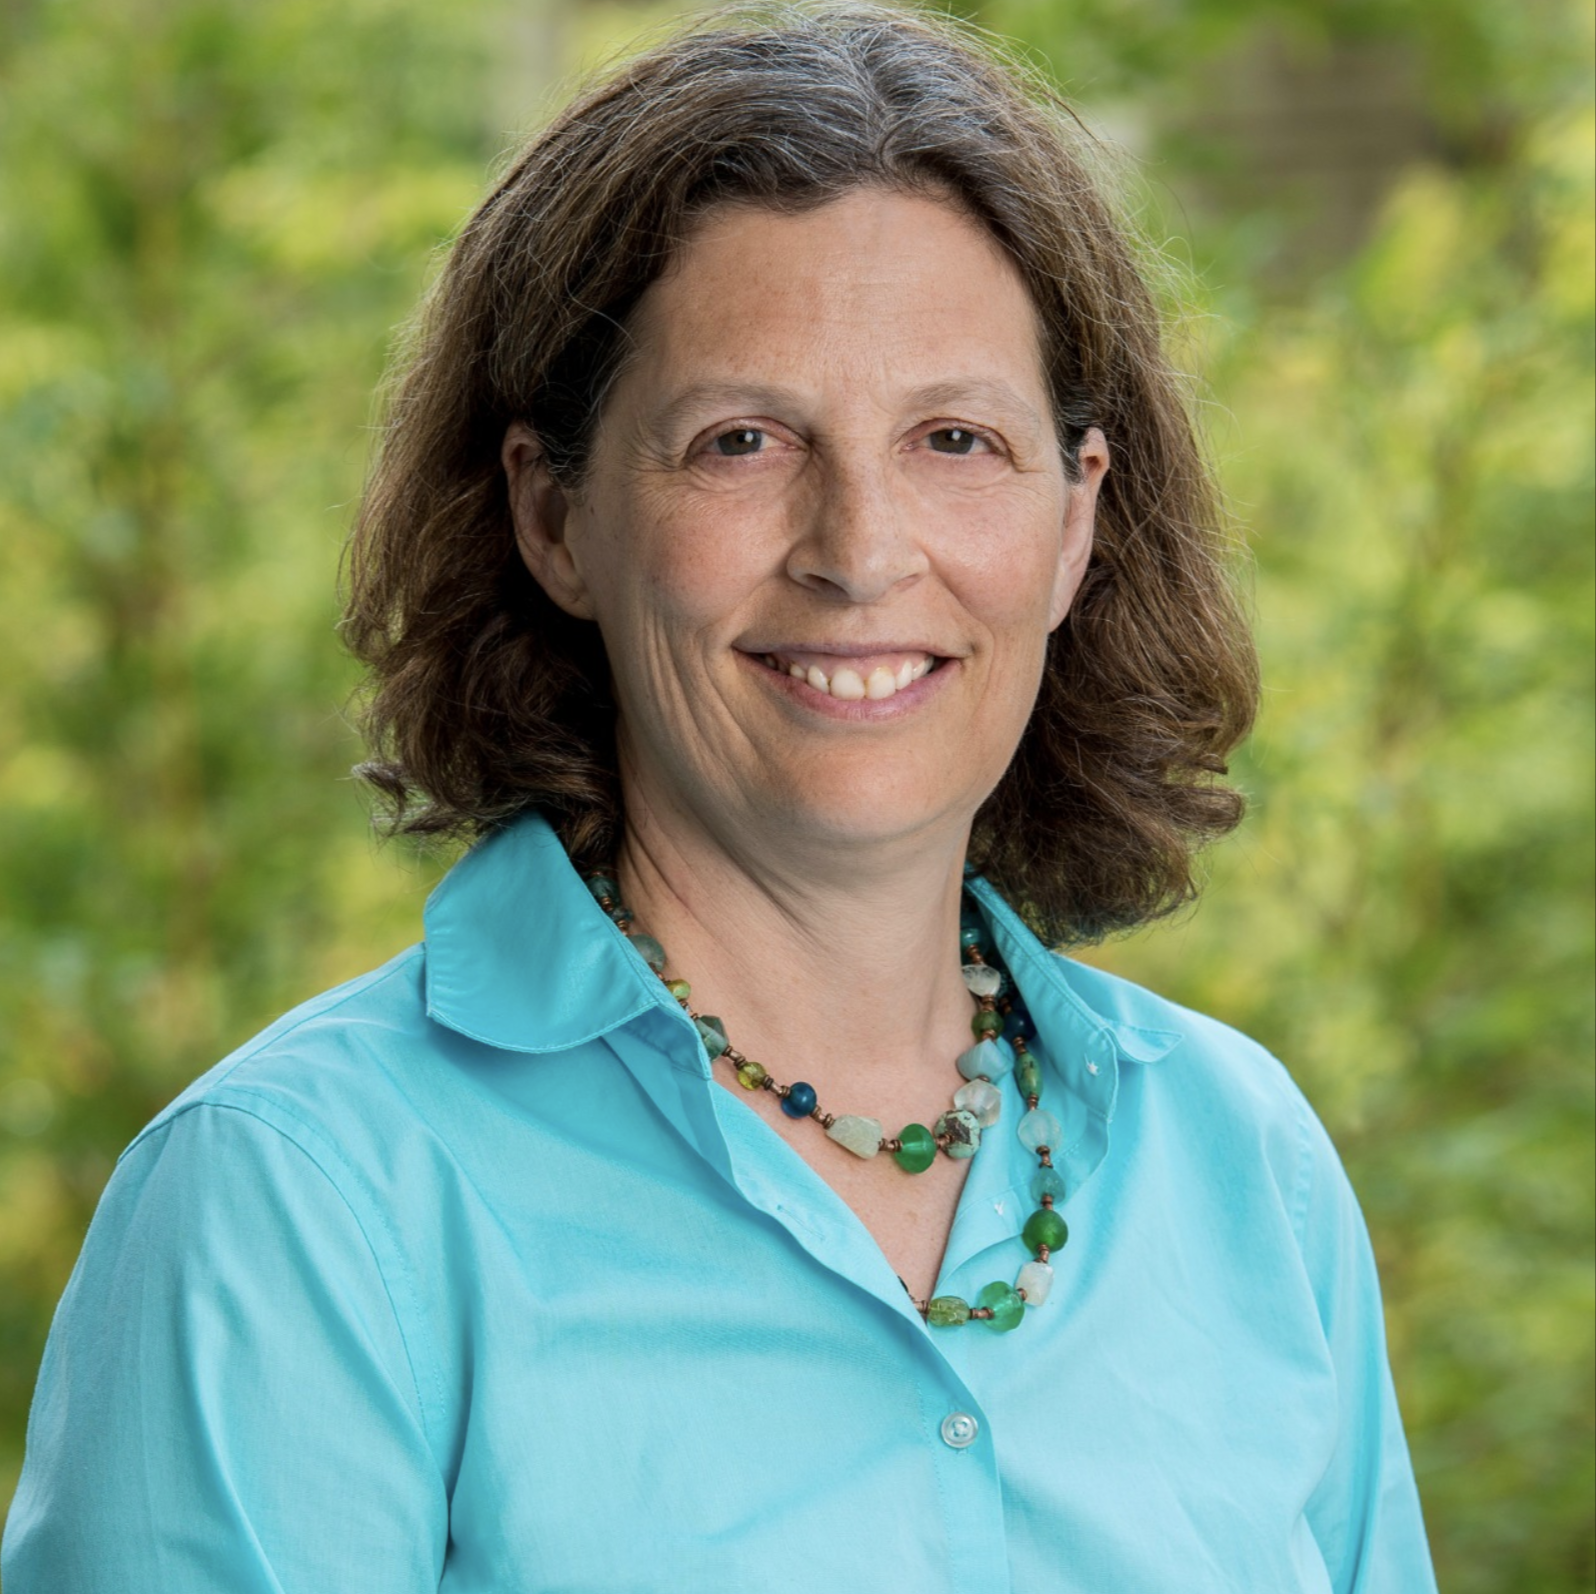 Dr. Julie Parsonnet, Professor of Medicine and of Health Research and Policy